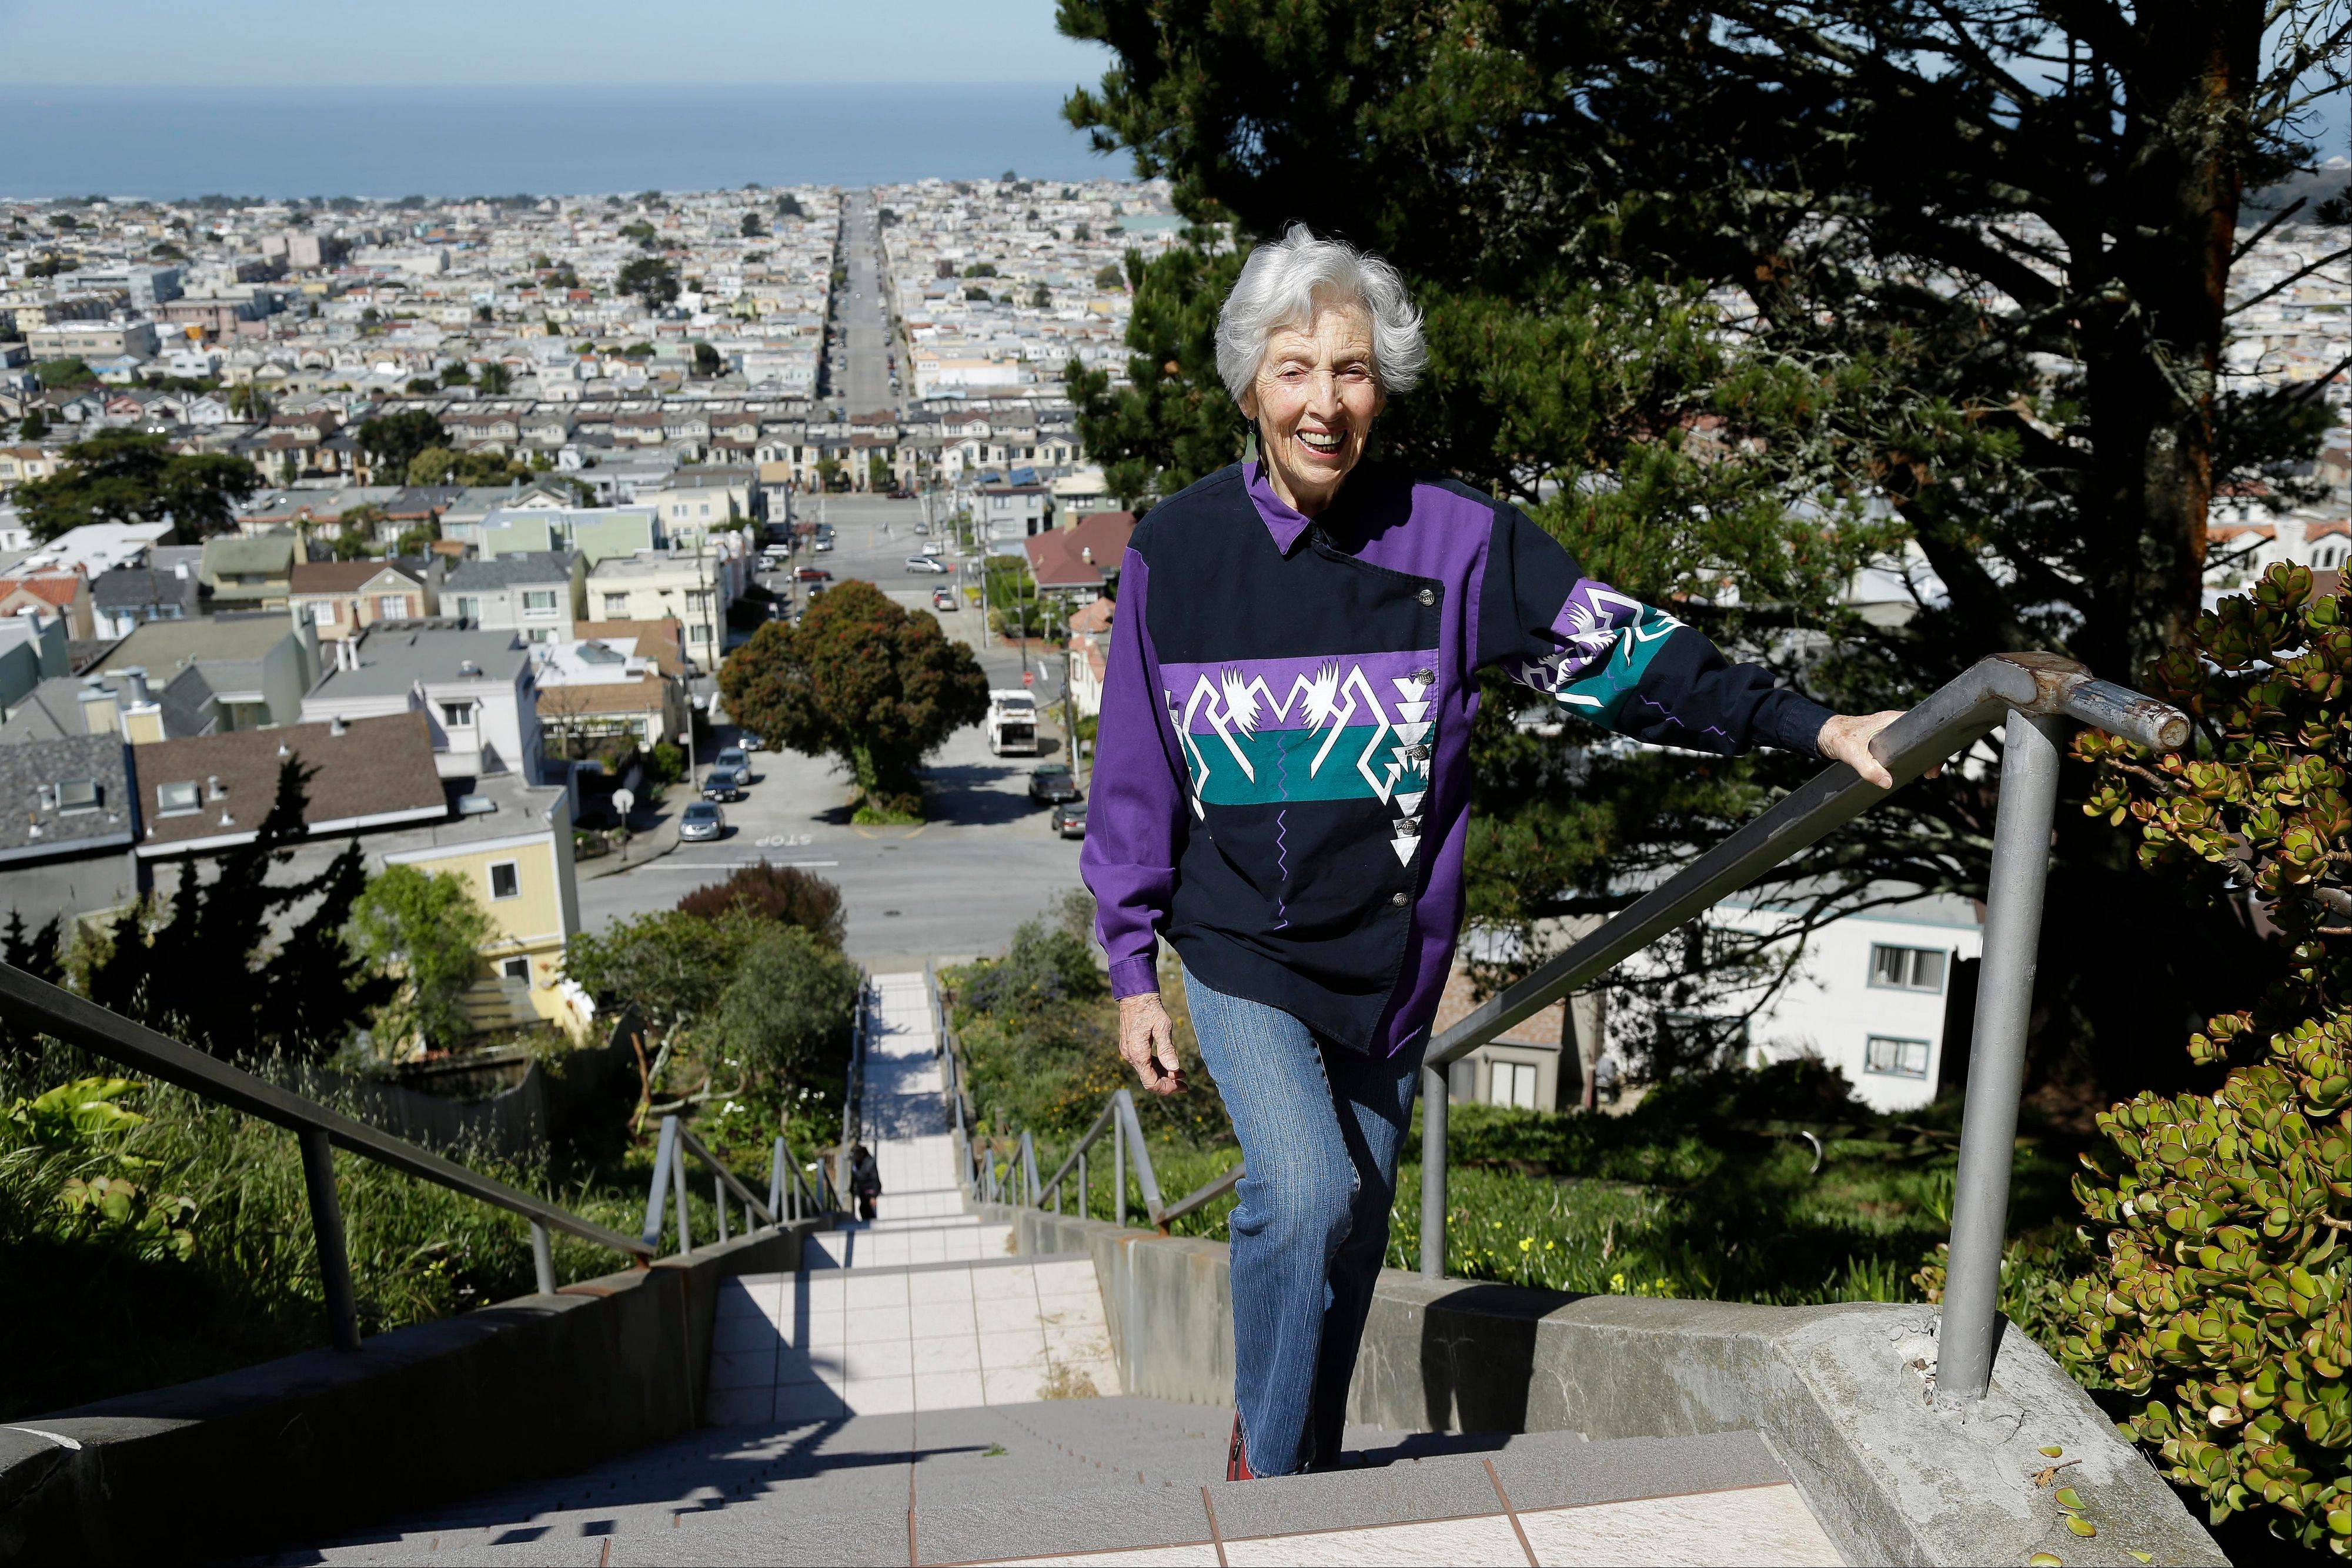 Adah Bakalinsky, left, reaches the top of the 163-step mosaic stairway of Golden Gate Heights in San Francisco. Bakalinsky, 90, has written two books about hiking on public stairways; books that are lessons in nature, architecture and history.